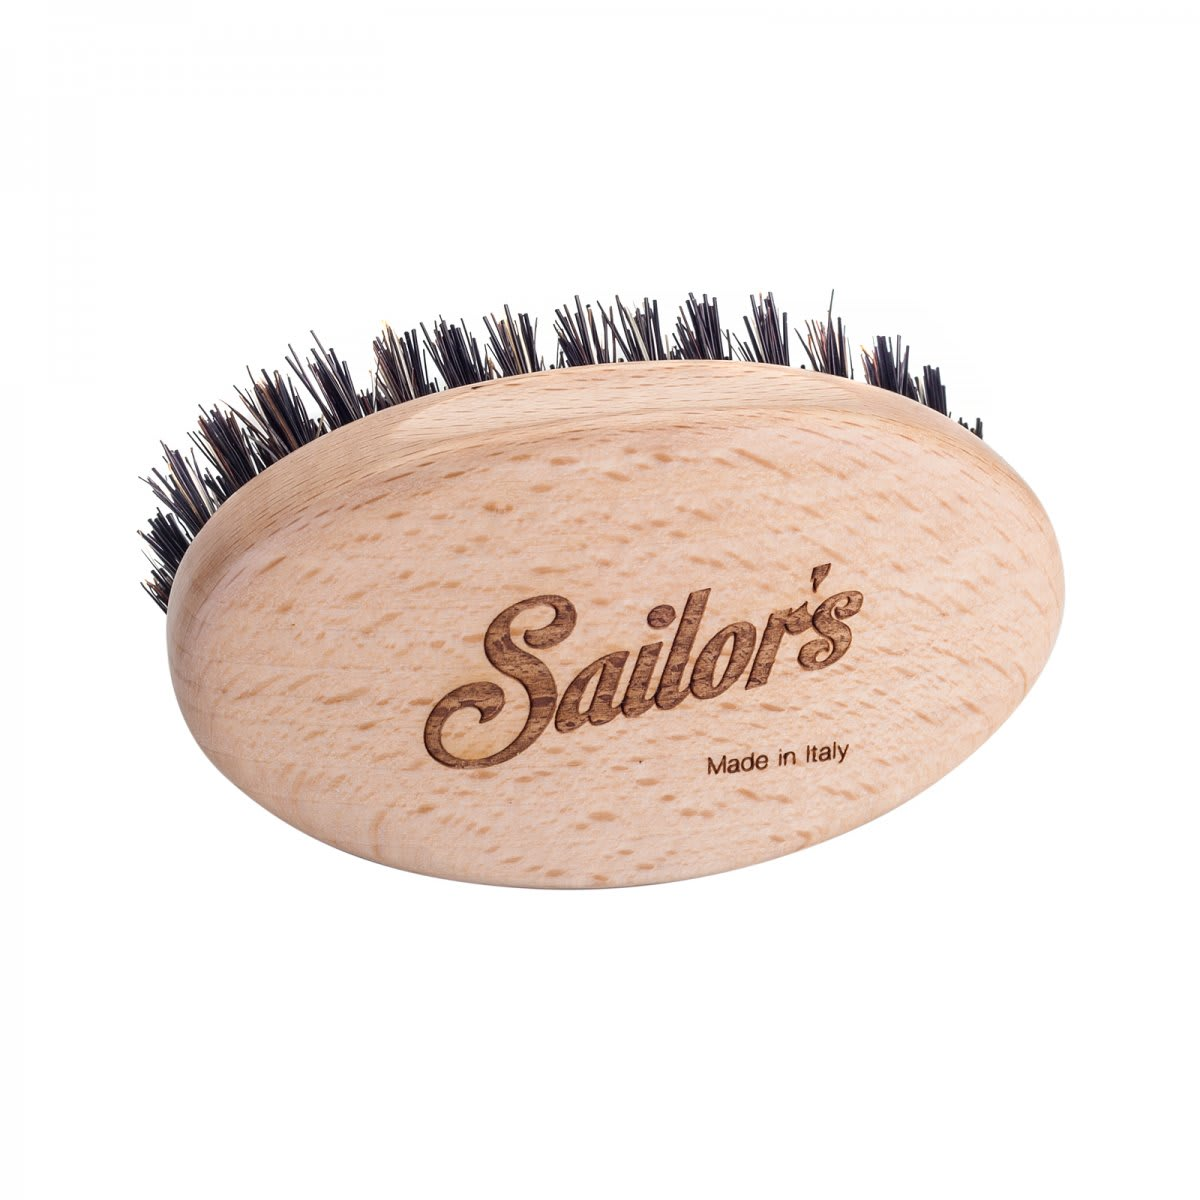 Sailor's Beard Brush Military Style